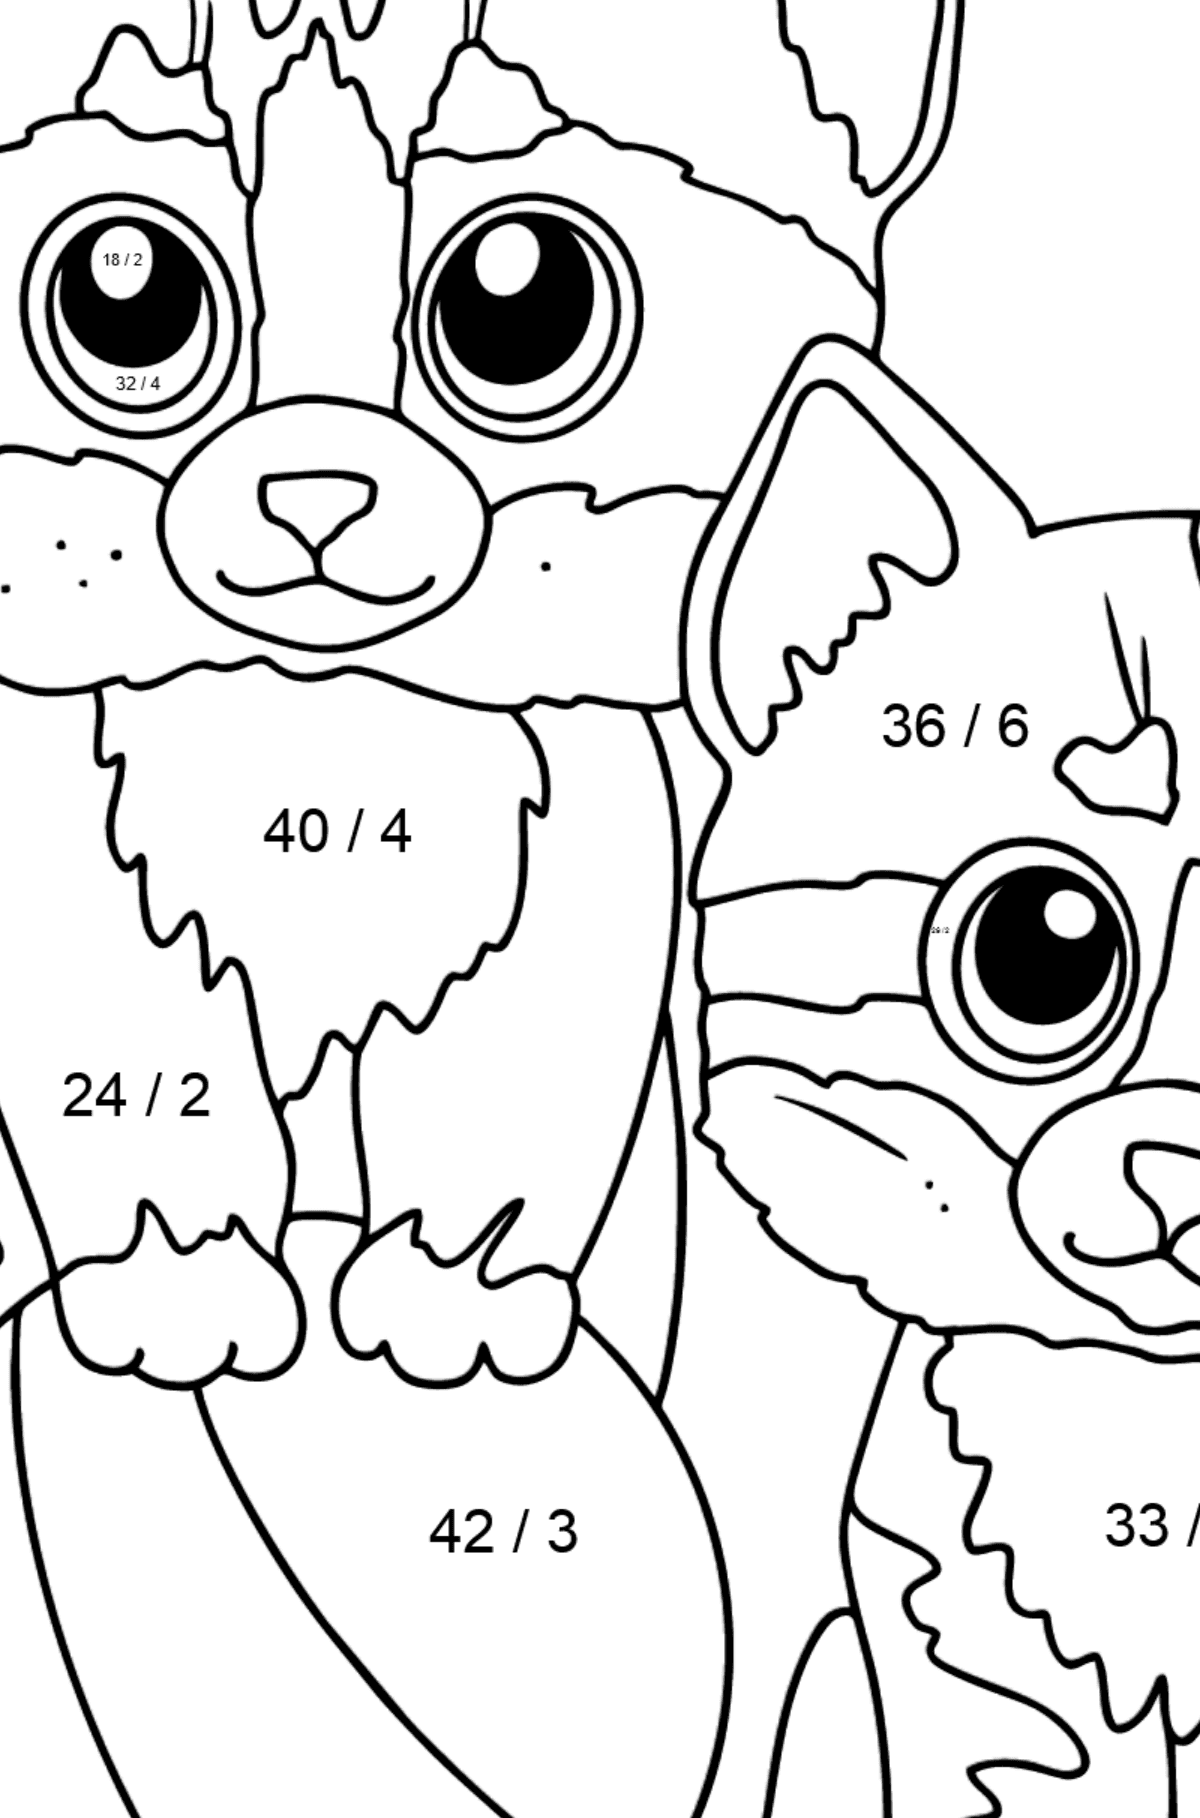 Coloring Page - Two Friendly Kittens Playing with a Ball - Math Coloring - Division for Kids